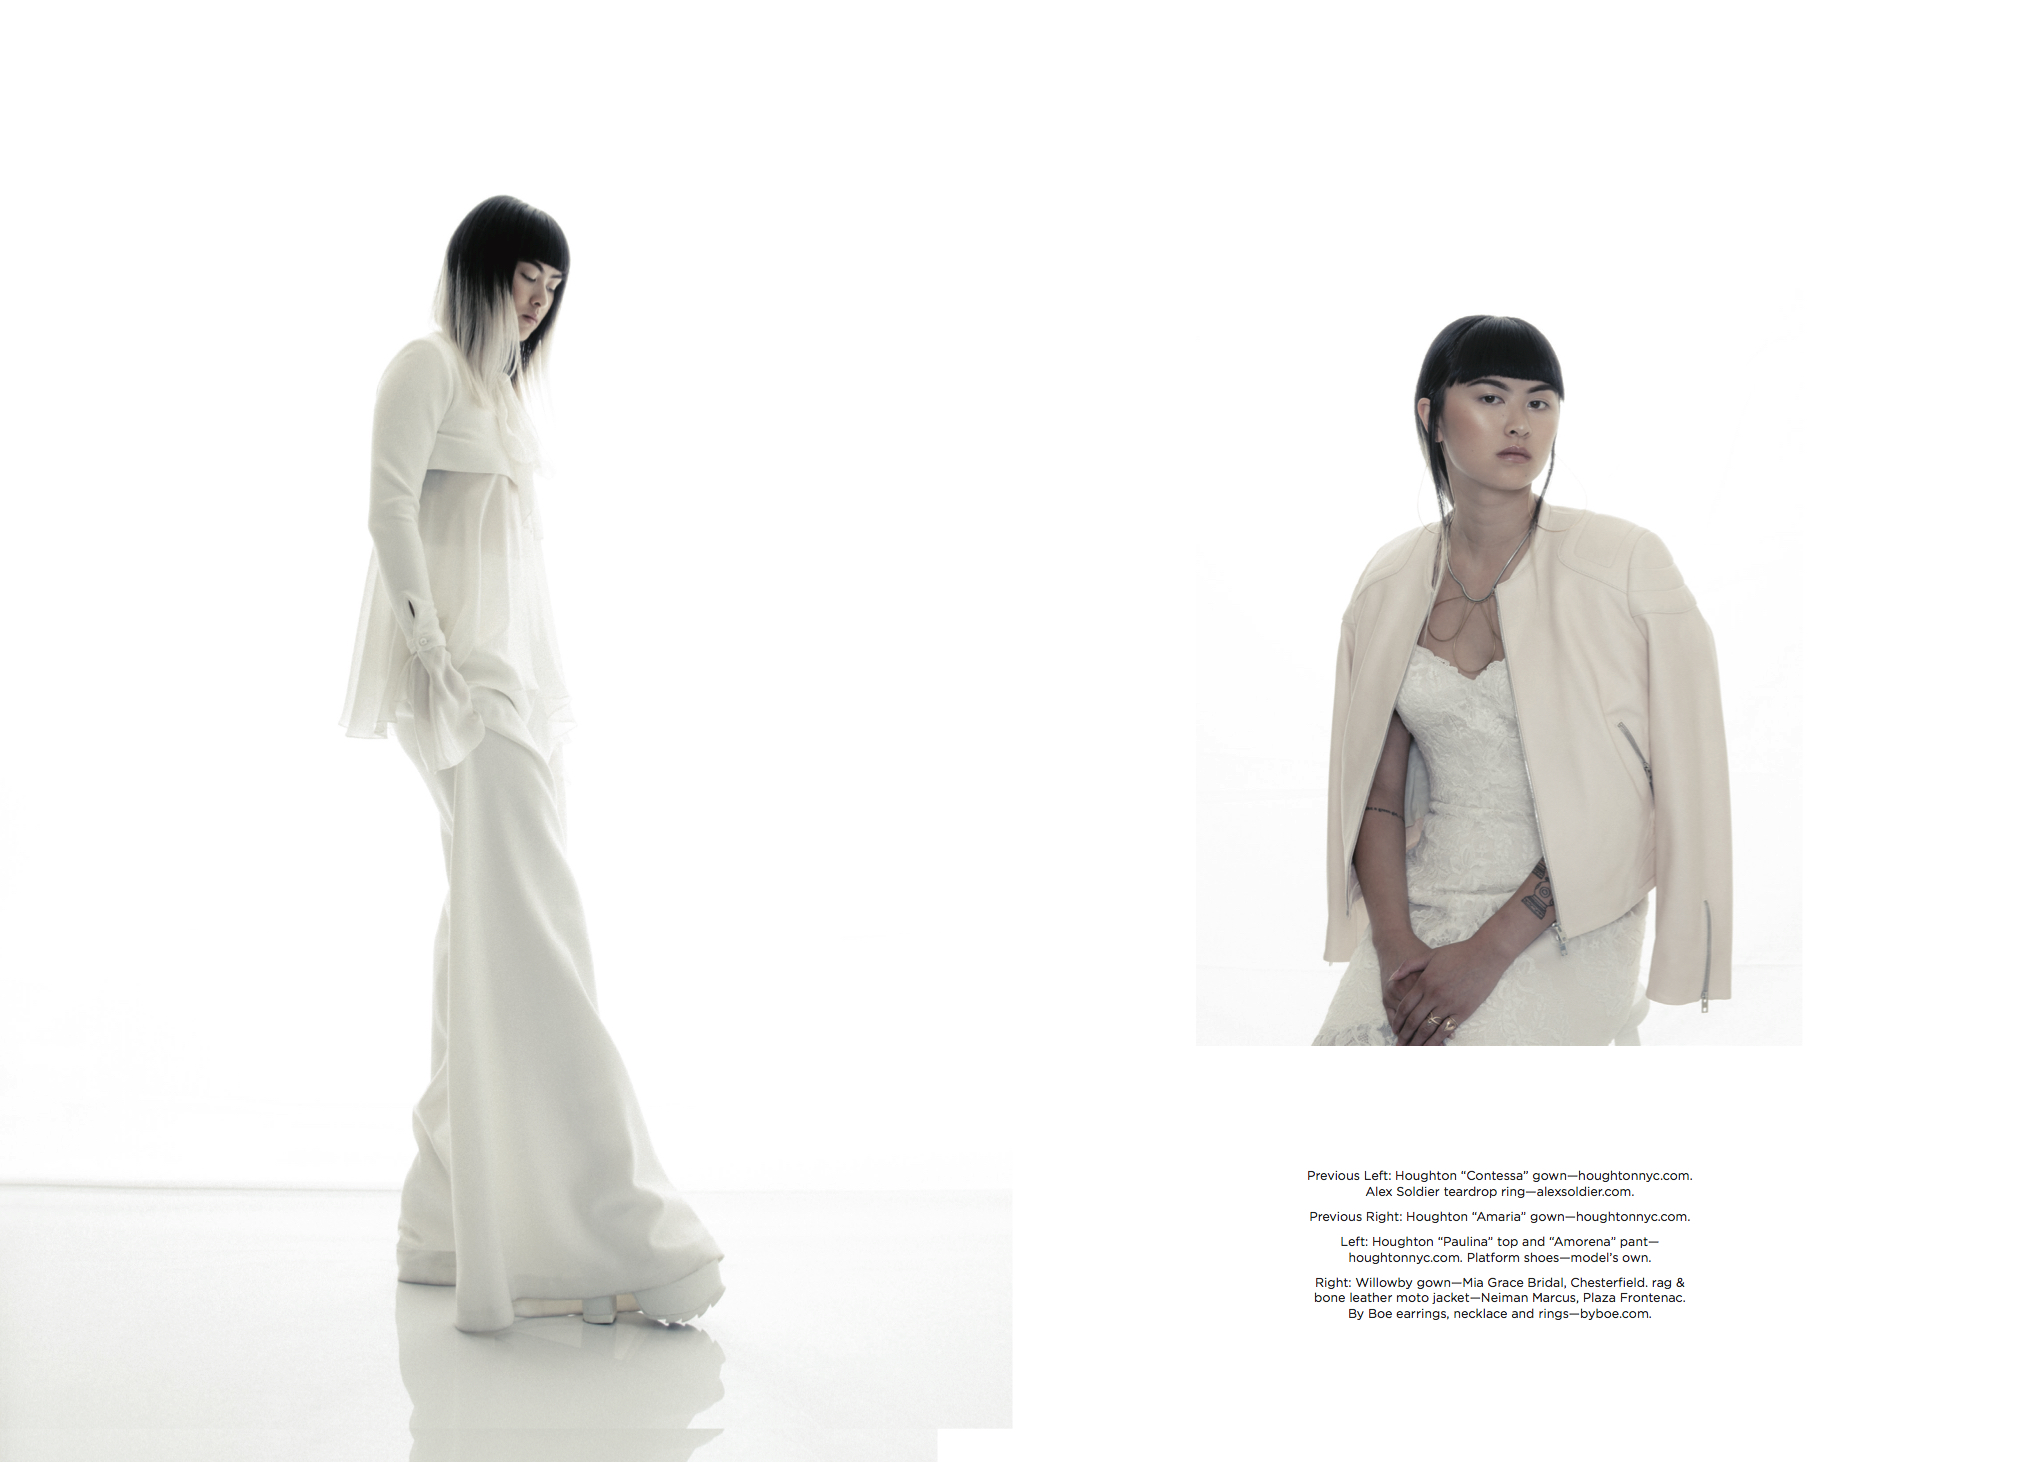 2ALIVE_Wedding Vol 1 Issue 3_Fashion_HighRes-2.jpg